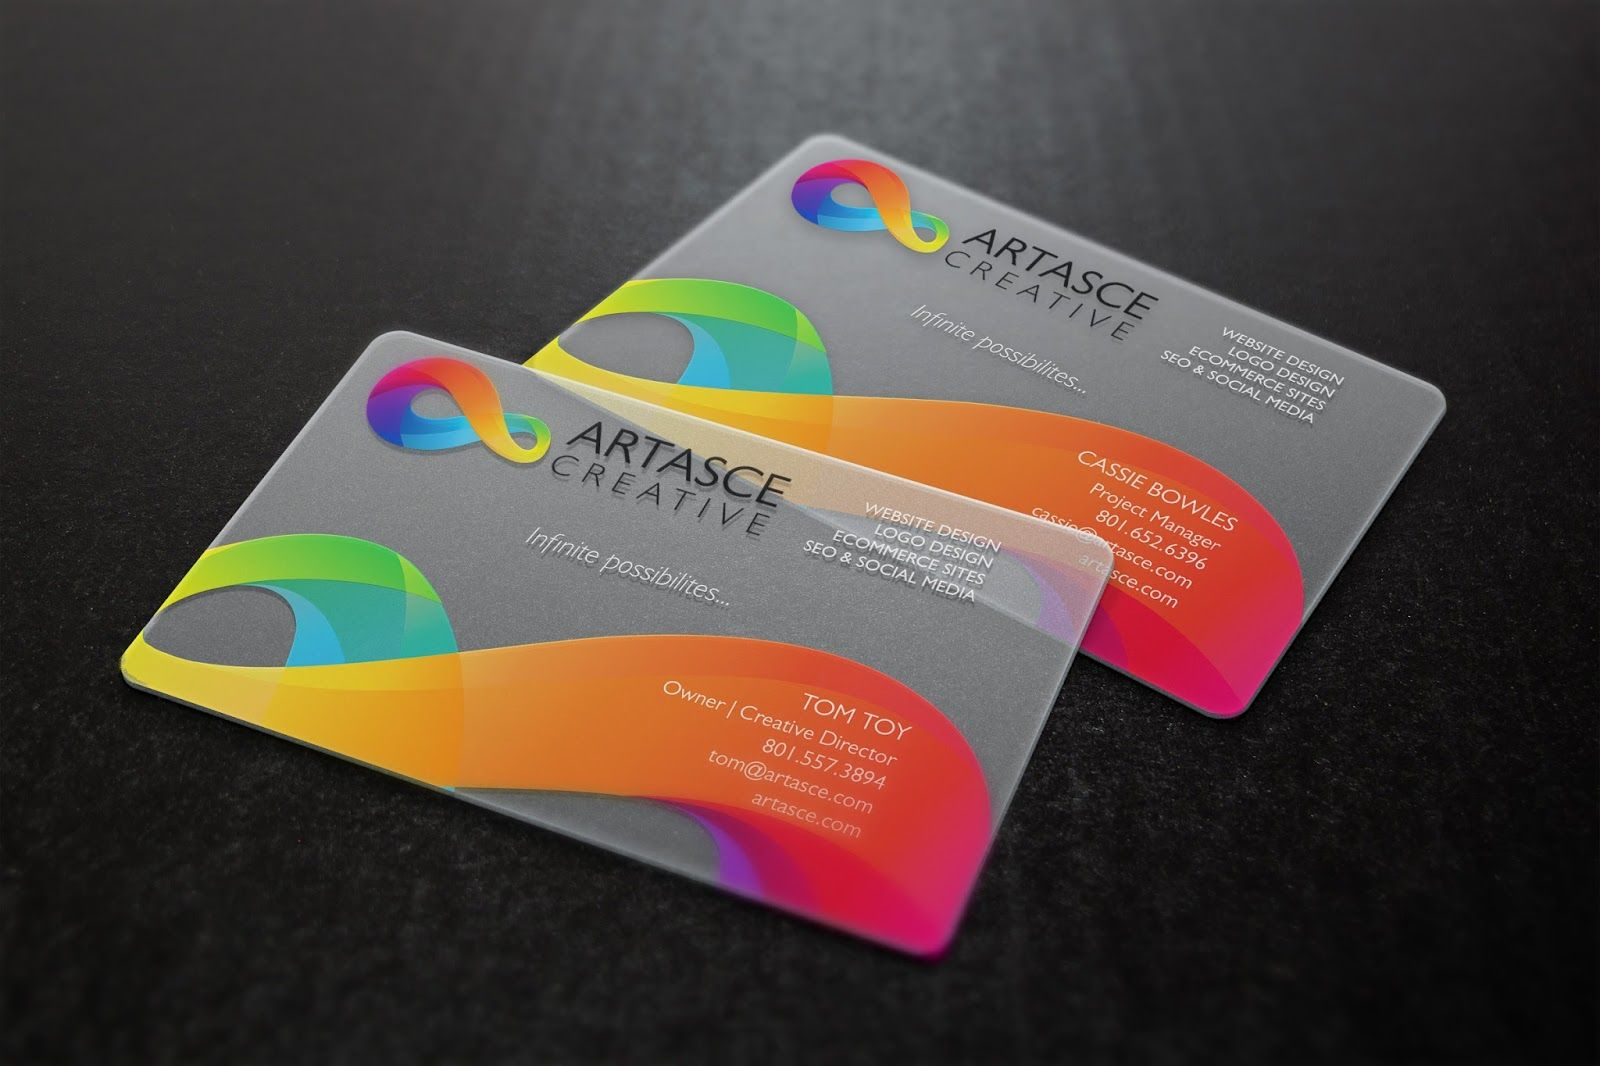 Clear Plastic Business Cards Plastic Business Cards Design Printing Business Cards Plastic Business Cards